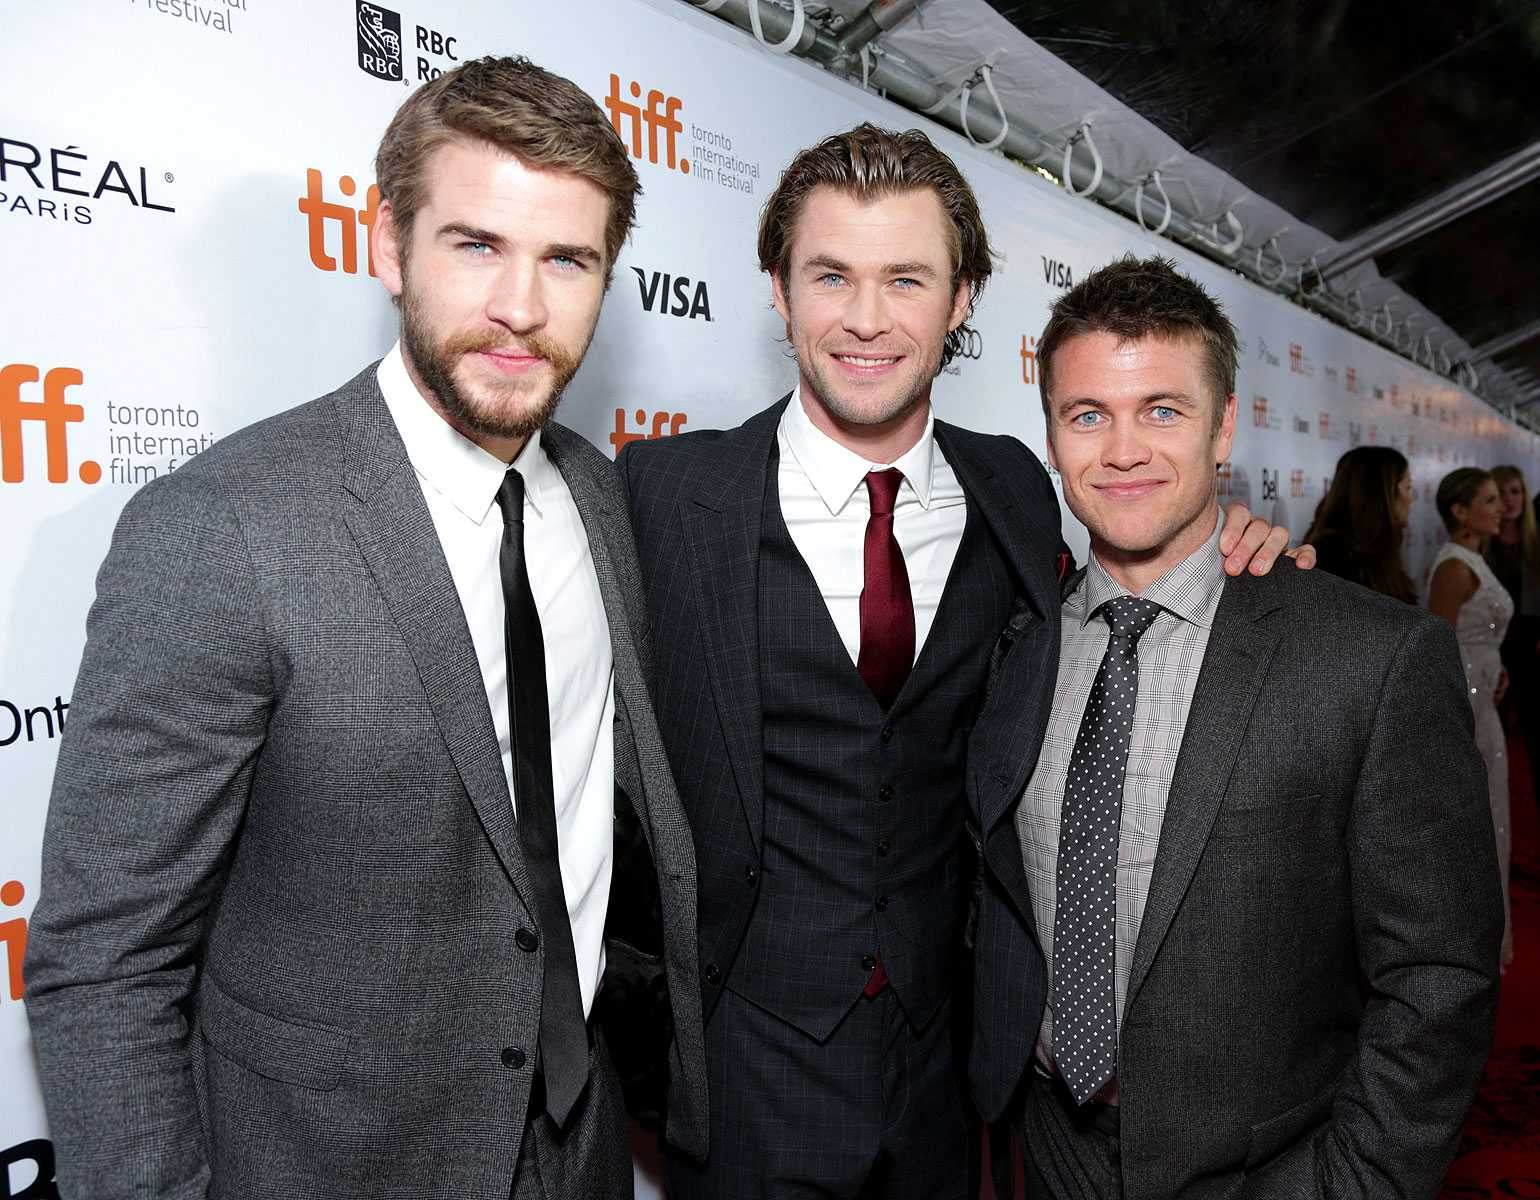 A Real Life Thor And Loki? Chris Hemsworth Opens Up About 'Competitive' Relationship With Brothers Liam And Luke